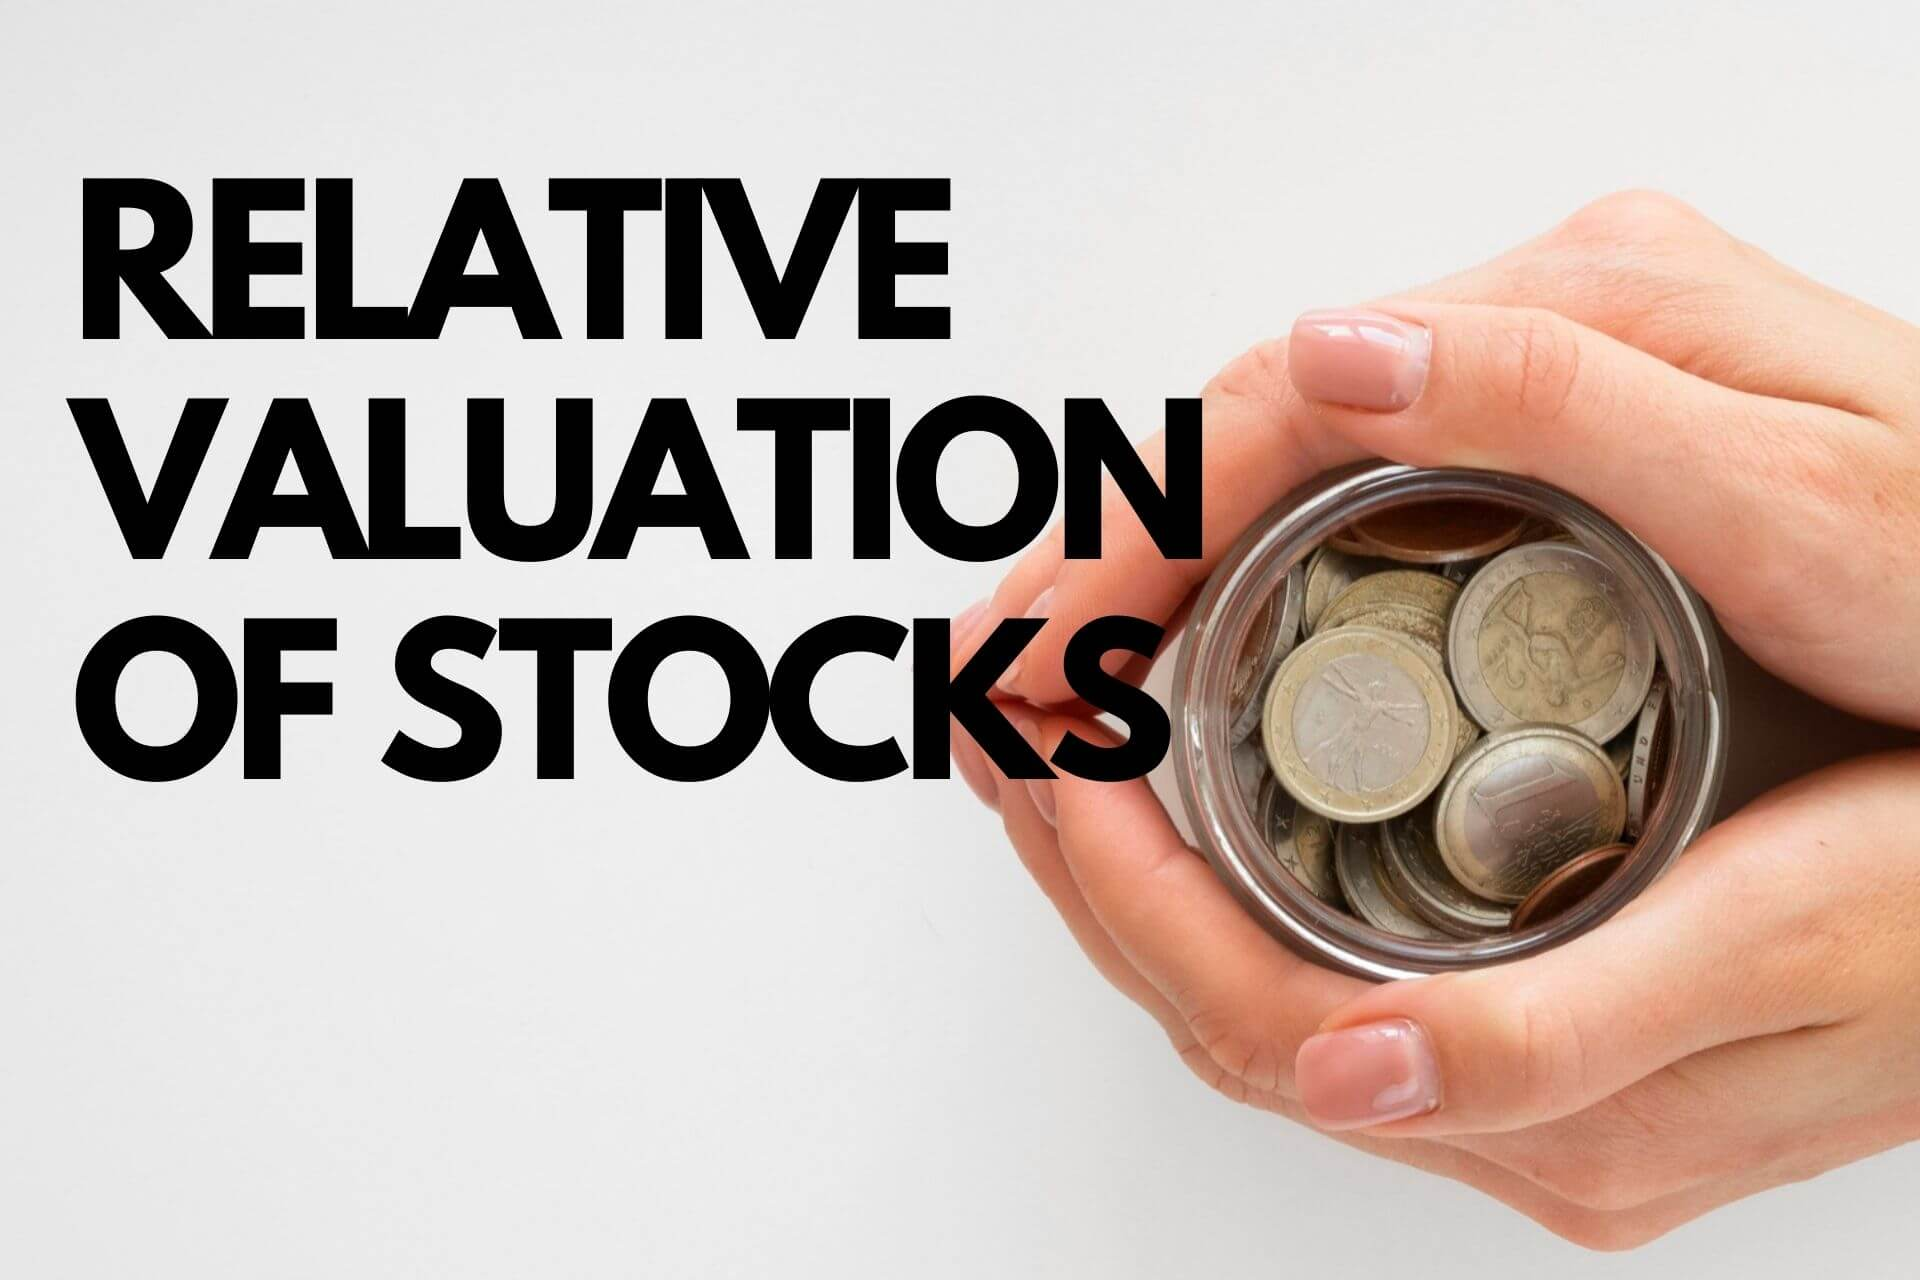 How to do the Relative Valuation of Stocks? Basics of Stock Valuation!